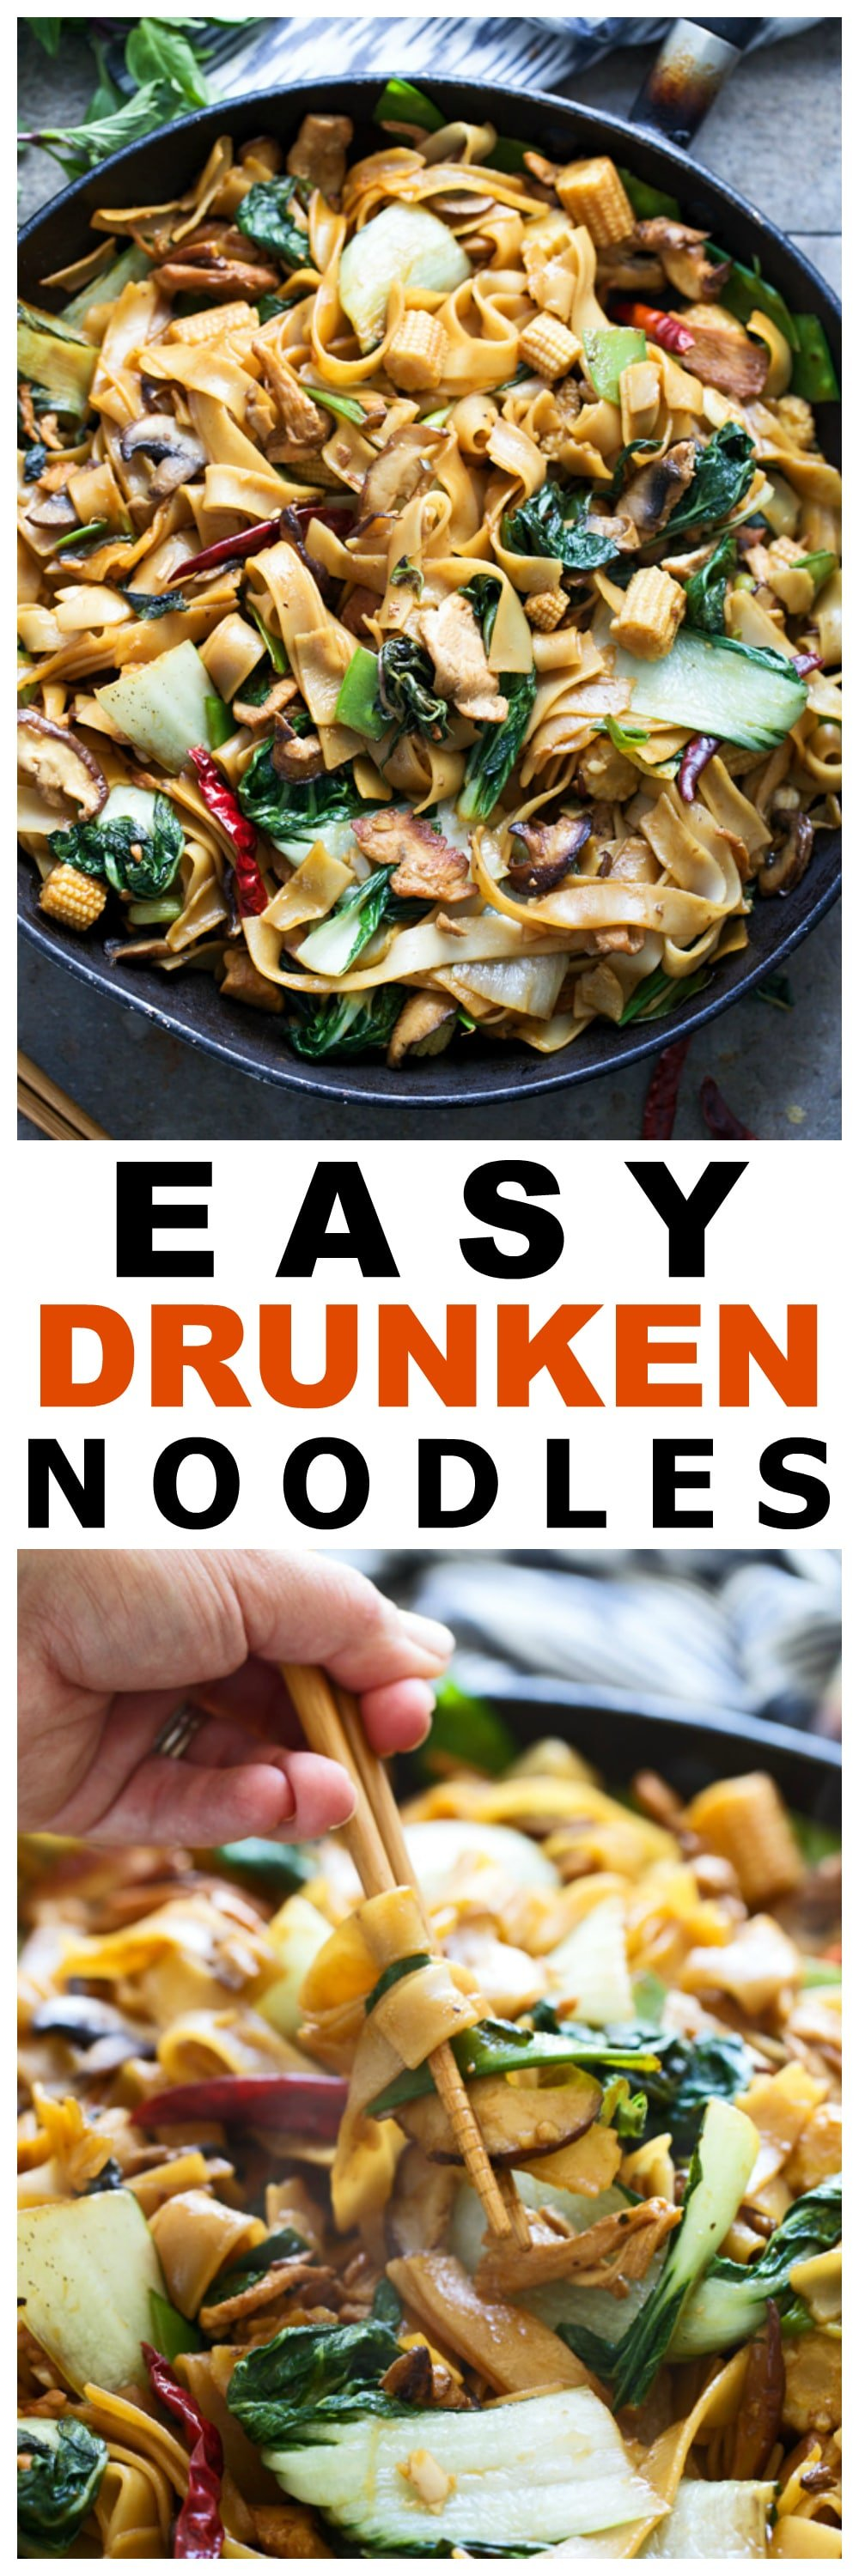 Easy Drunken Noodles (Pad Kee Mao) - Less than 45 minutes to authentic Thai noodles!